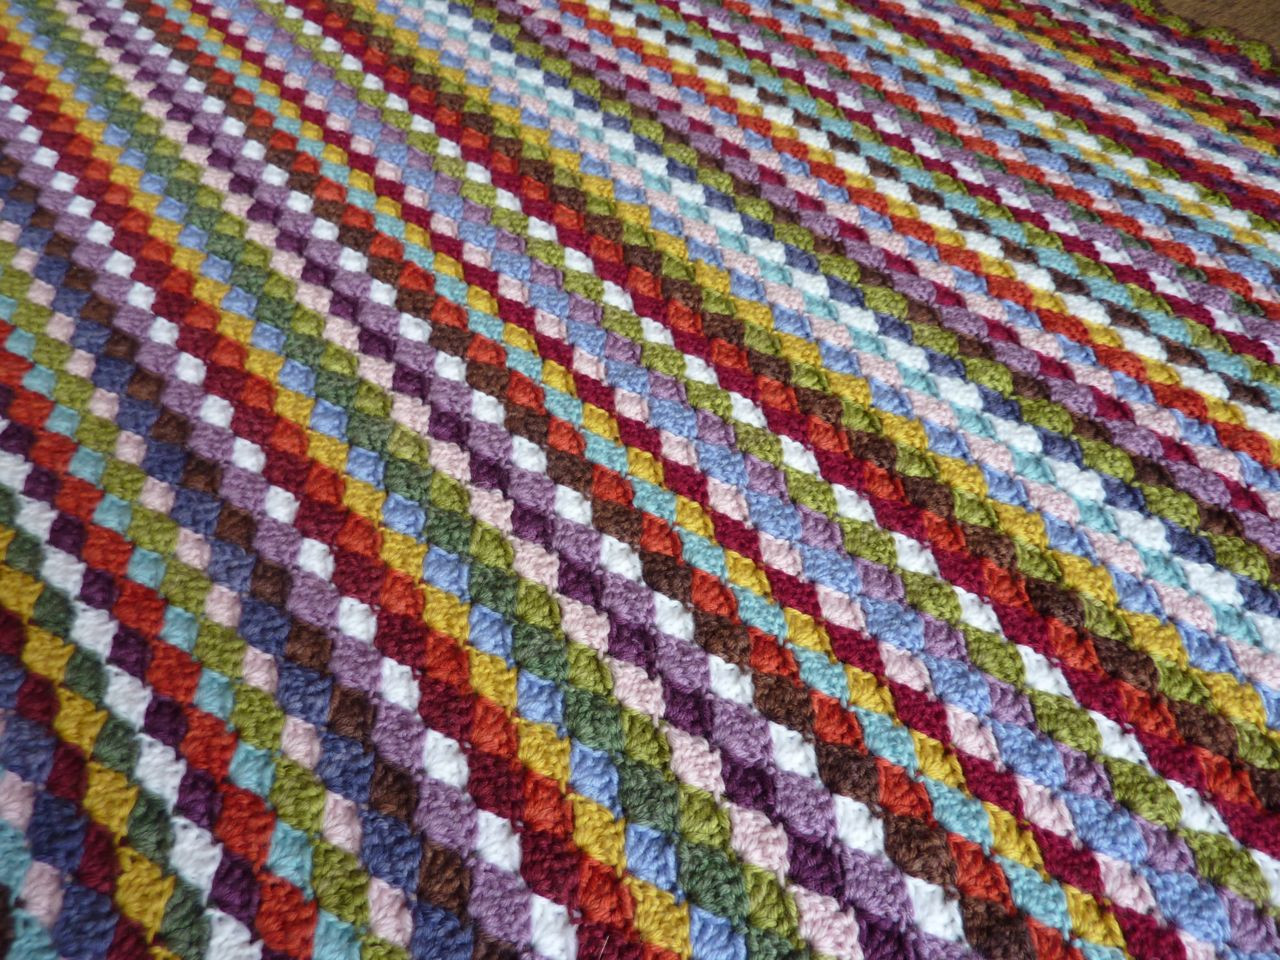 Crochet Throw Blanket Best Of Pattern for Crochet Edging On Fleece Blanket – Easy Of Great 44 Pics Crochet Throw Blanket